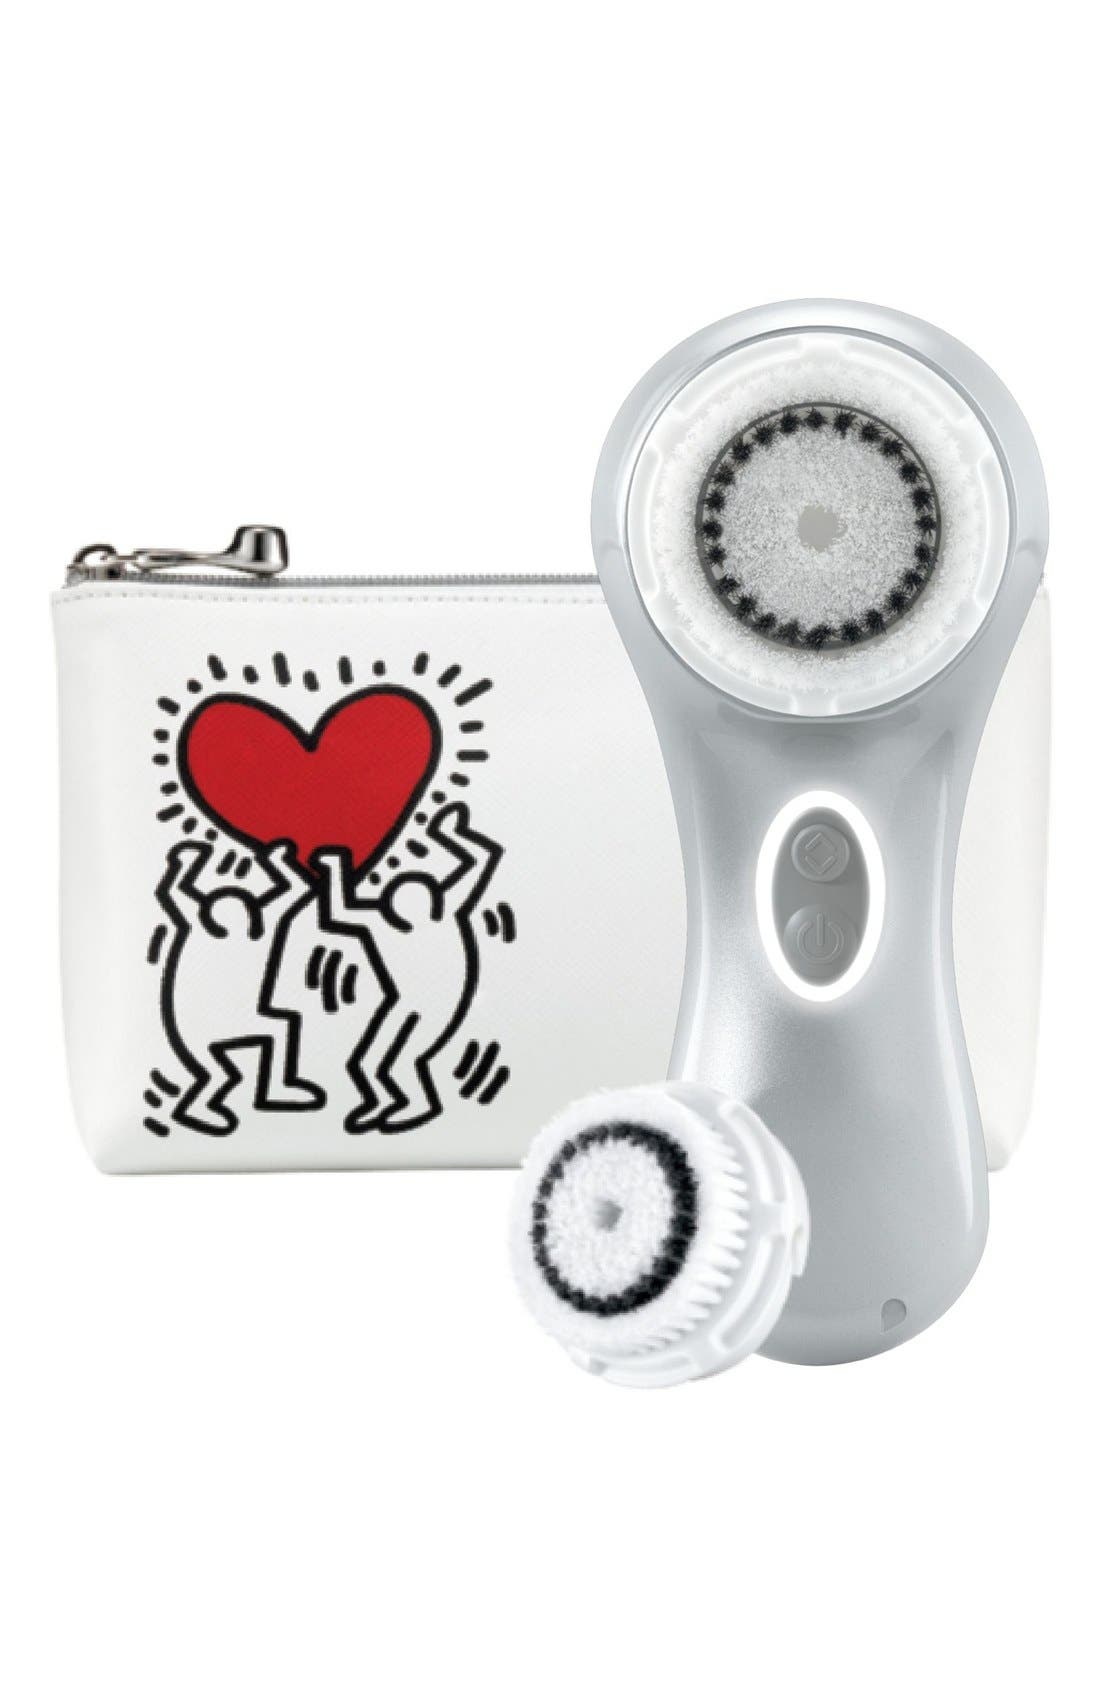 CLARISONIC 'Mia 2 - Keith Haring Silver' Sonic Skin Cleansing System, Main, color, 000